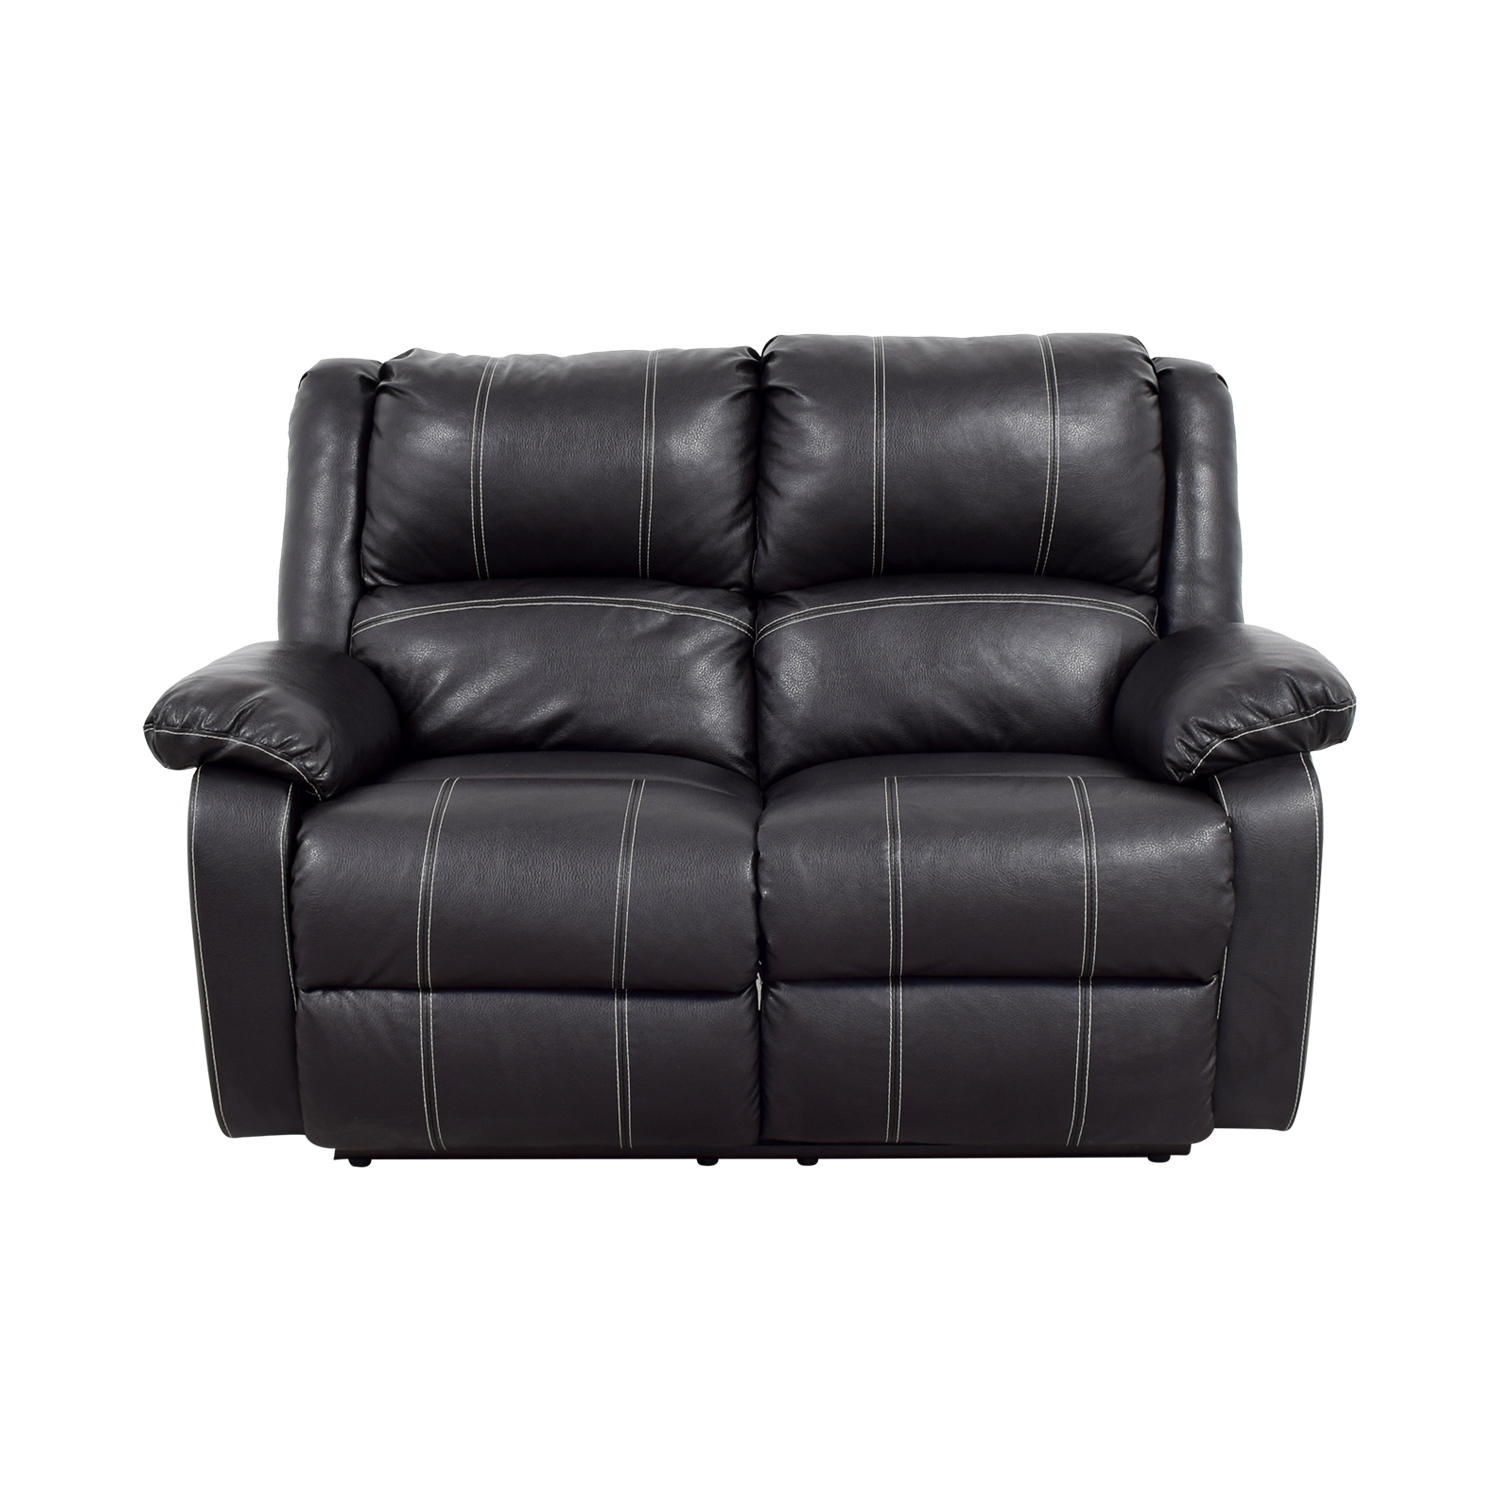 Marvelous 49 Off Acme Acme Black Leather Reclining Loveseat Sofas Caraccident5 Cool Chair Designs And Ideas Caraccident5Info